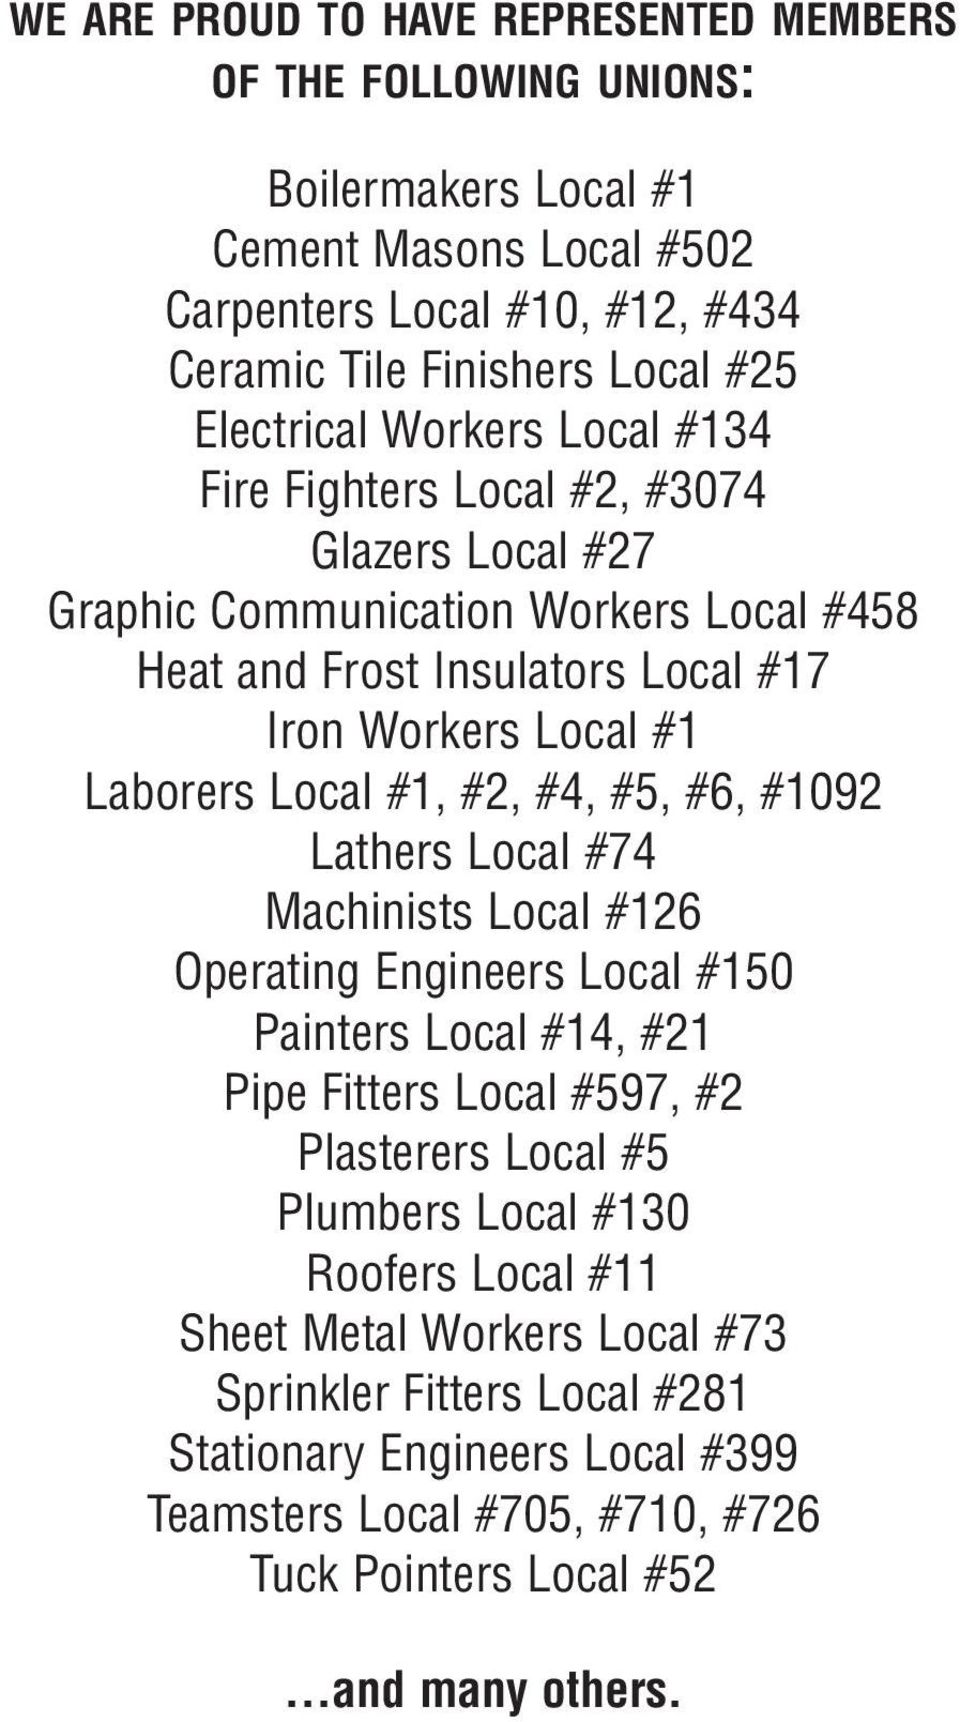 Local #1, #2, #4, #5, #6, #1092 Lathers Local #74 Machinists Local #126 Operating Engineers Local #150 Painters Local #14, #21 Pipe Fitters Local #597, #2 Plasterers Local #5 Plumbers